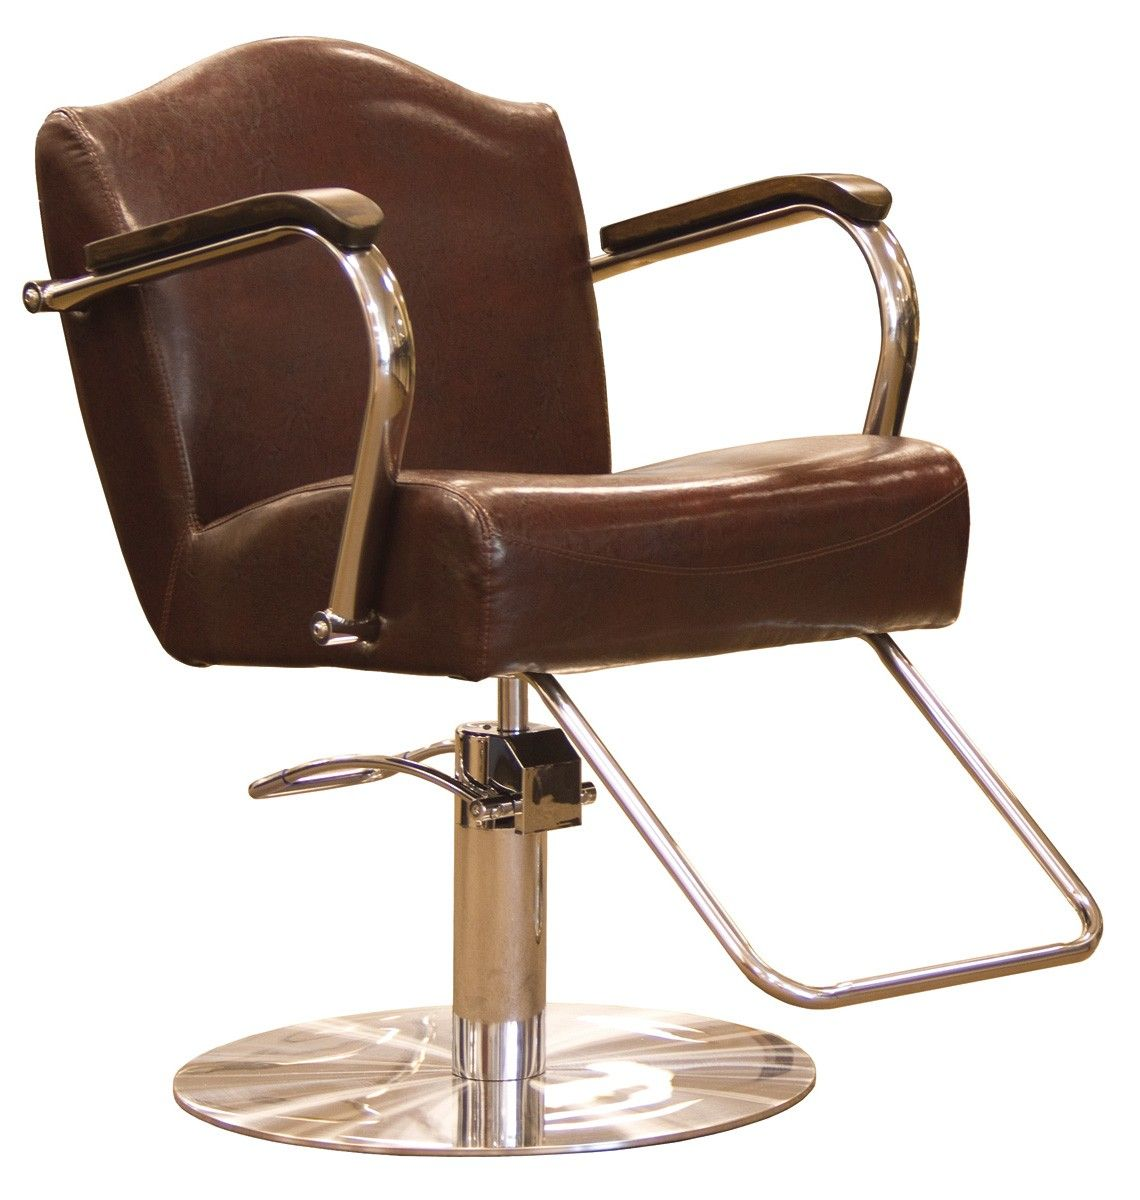 The Regal Styling Chair In Antique Brown Features A Low Profile Round Stainless Steel Base With U Shaped Footrest Wood Capped Chair Style Chair Unique Chair